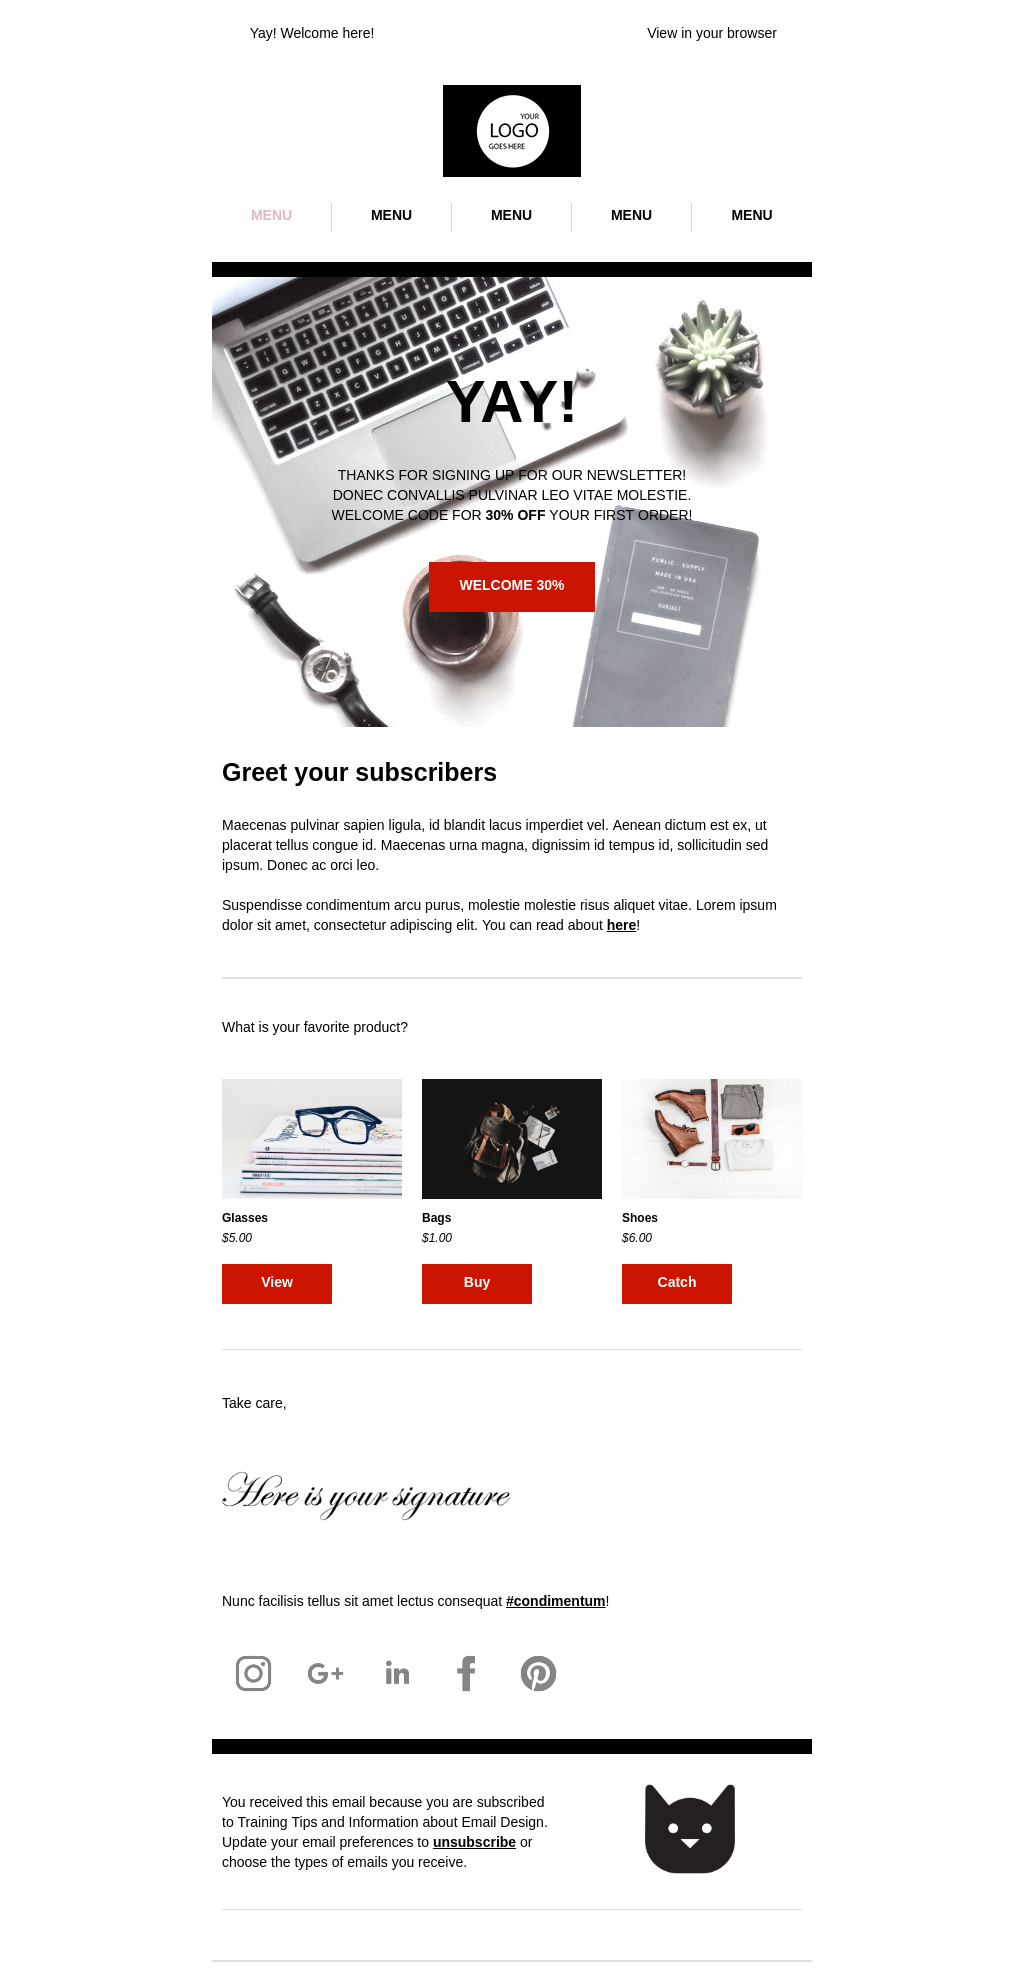 Advanced ecommerce welcome email template with upsell section